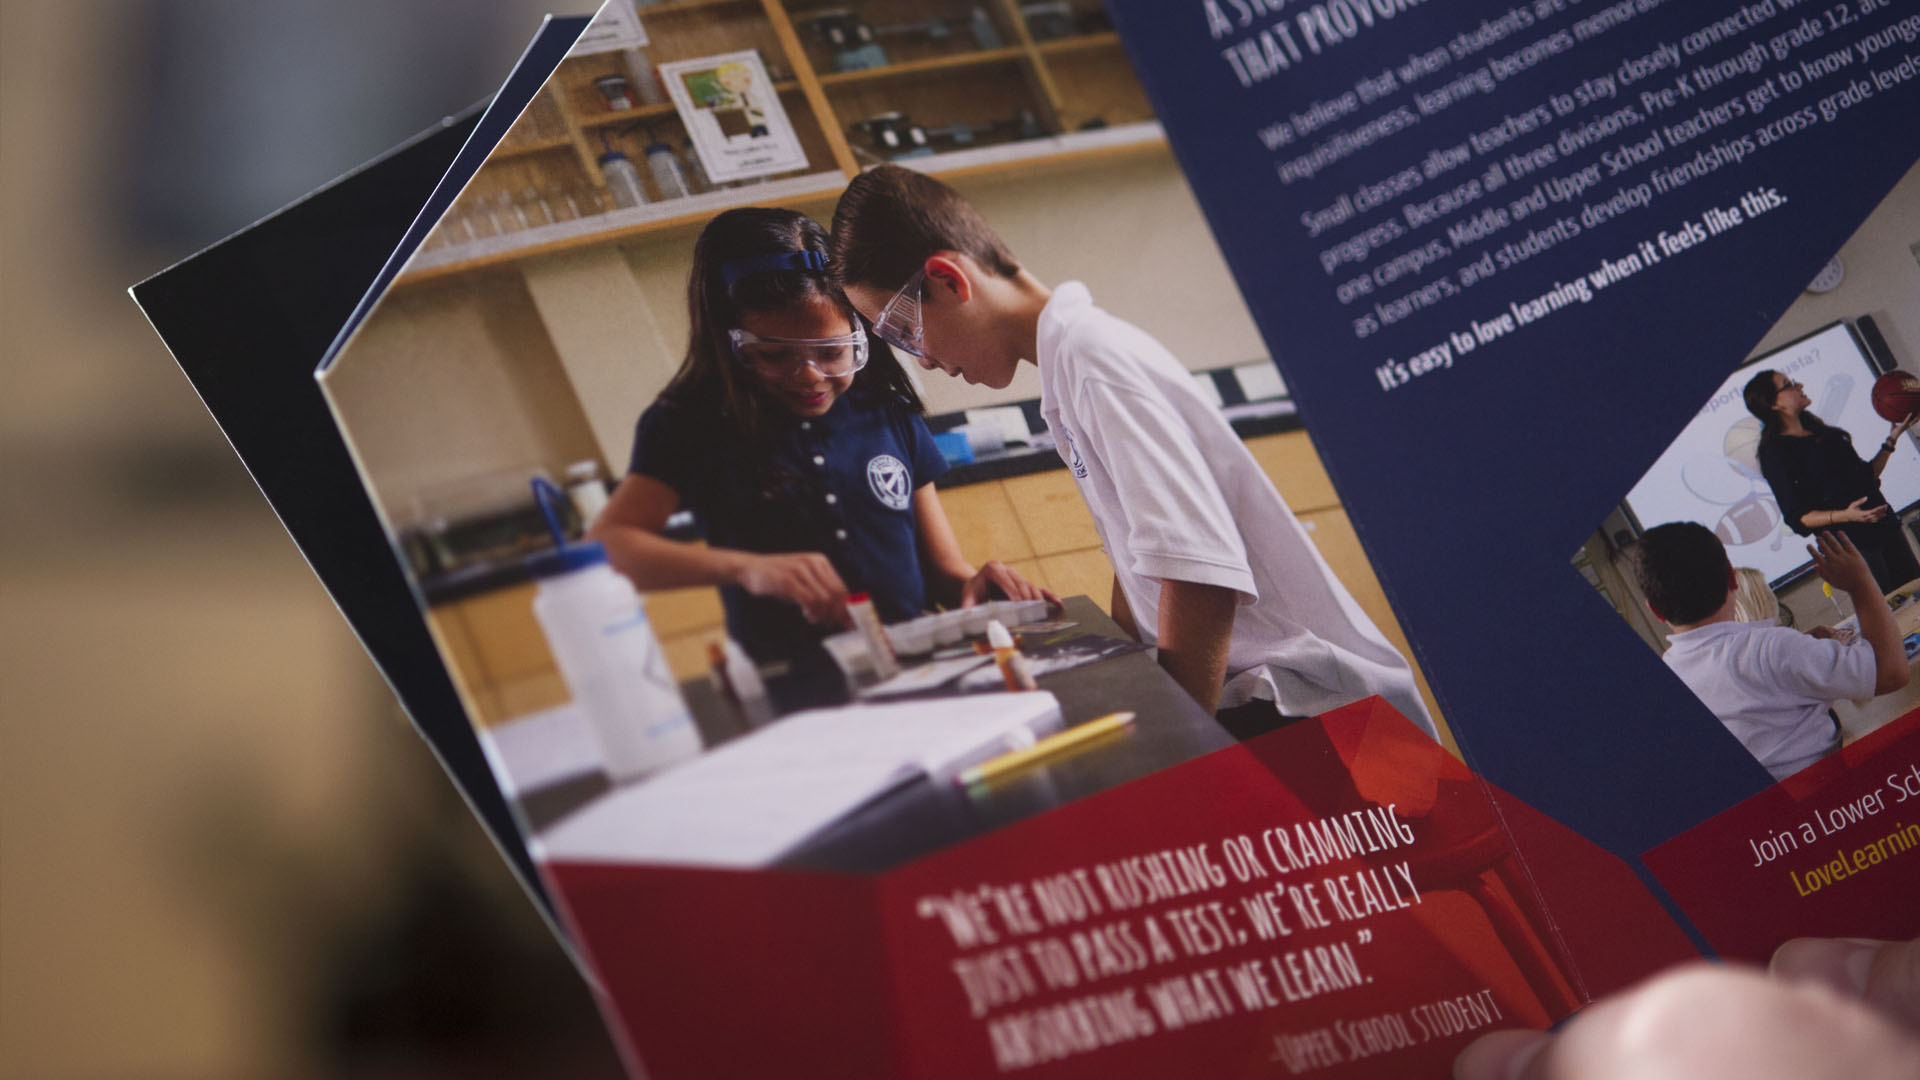 Saddle-River-Day-School-Branding-Marketing-Admissions-Campaign-Direct-Mail_05.jpg